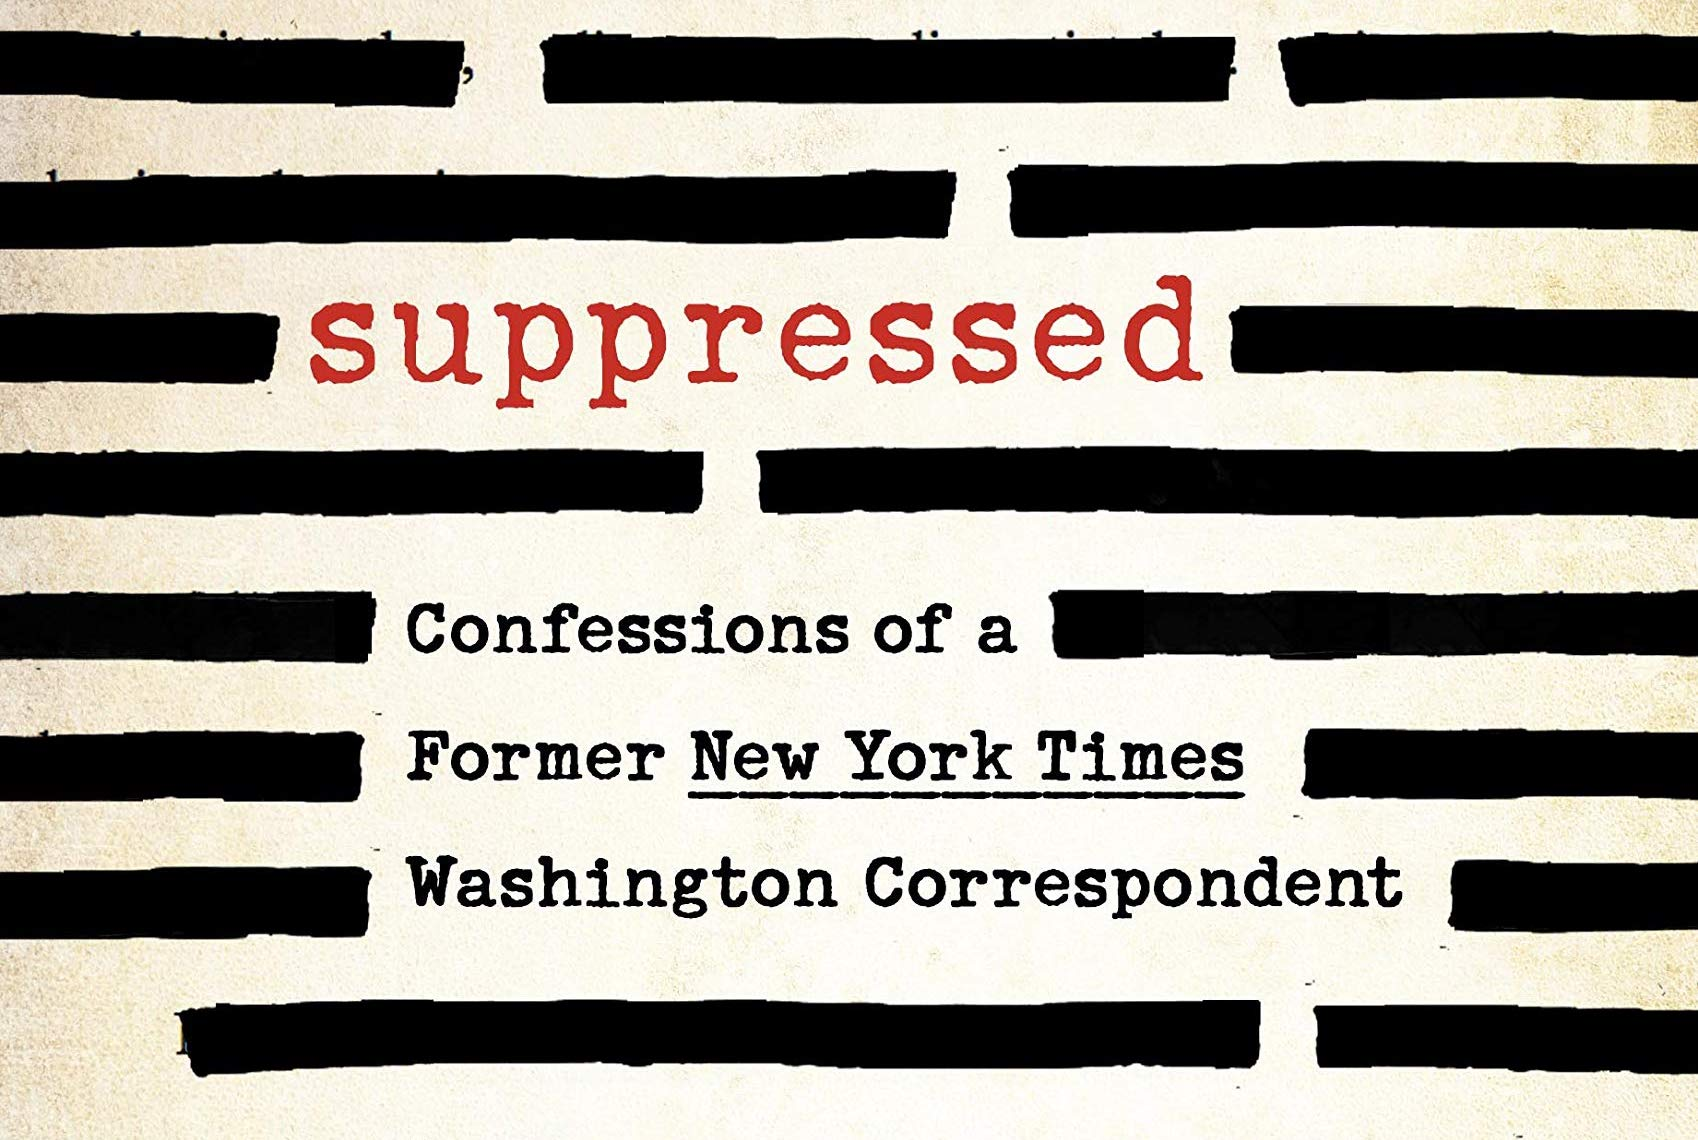 Suppressed: Confessions of a Former New York Times Washington Correspondent